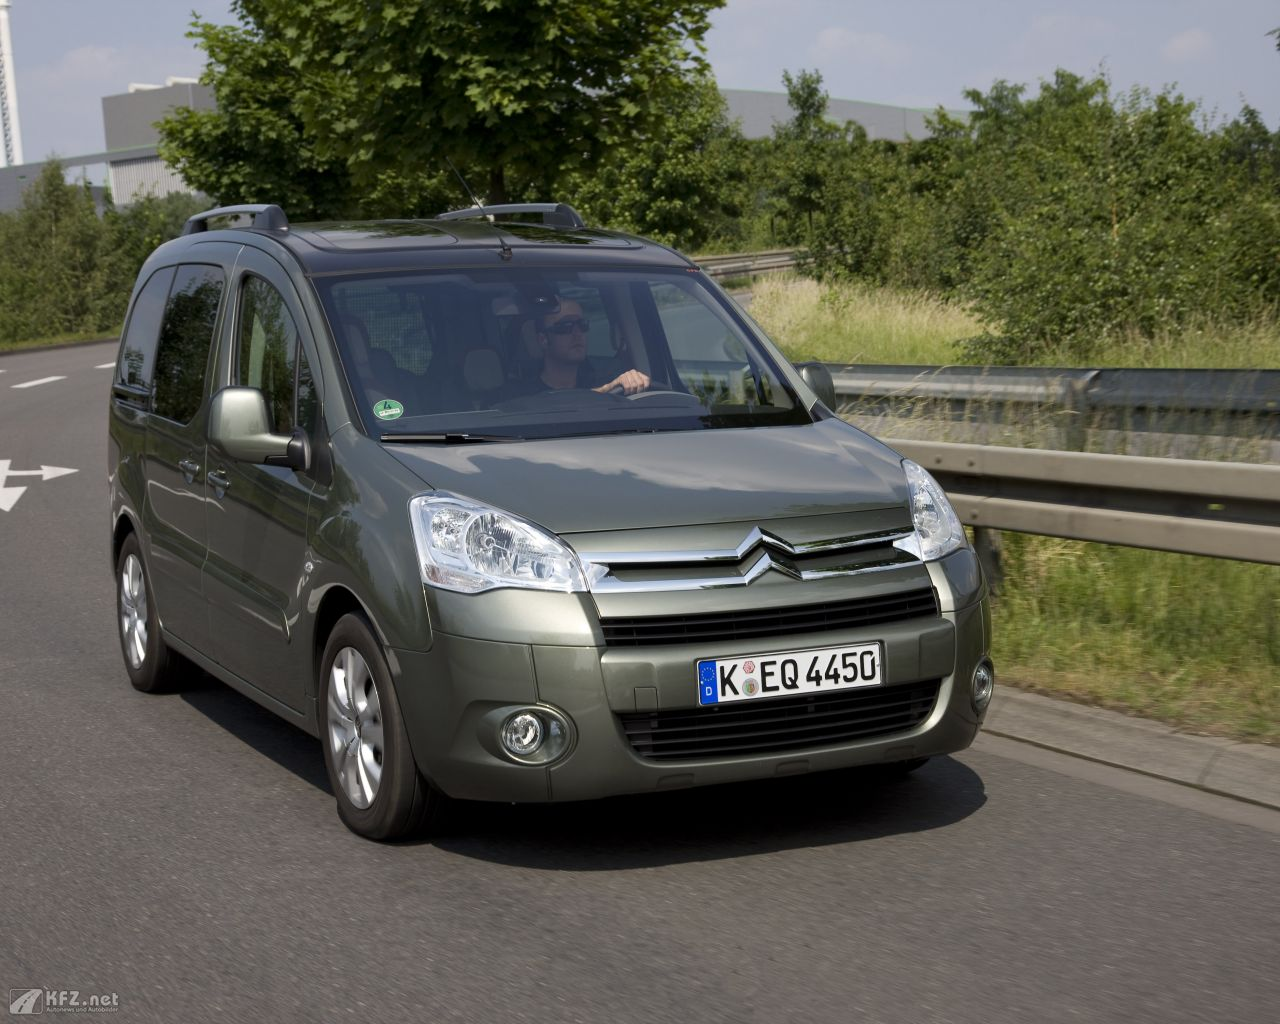 citroen-berlingo-1280x1024-201